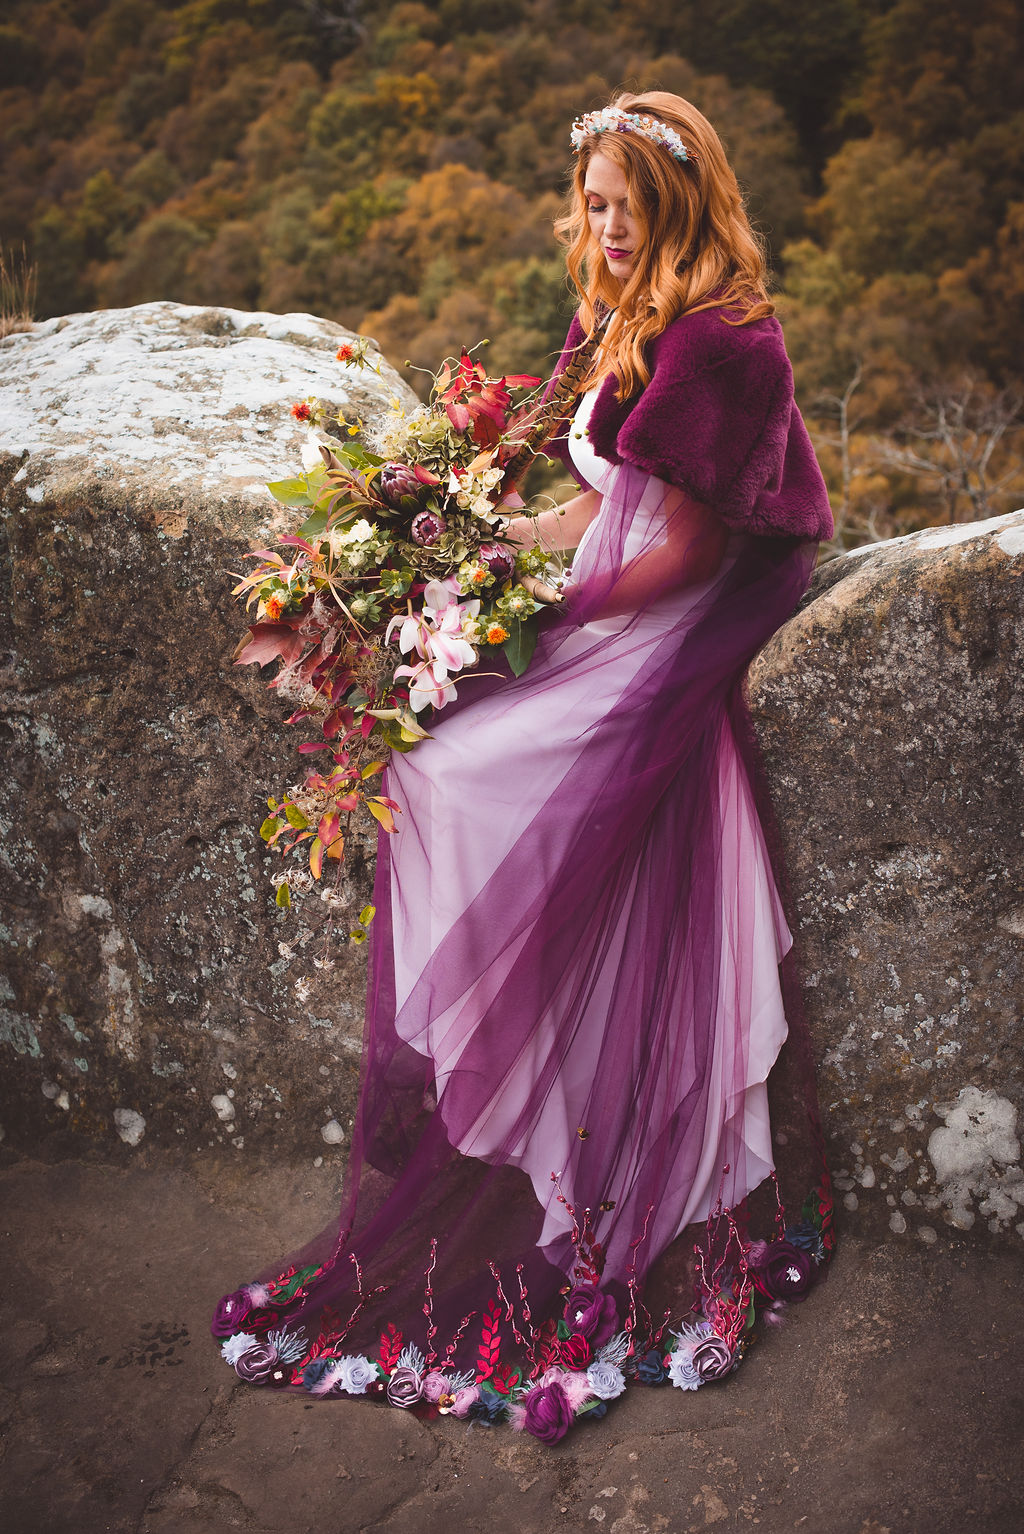 Autumn Wedding, Fantasy Wedding, Winter Wedding, Unconventional Wedding, Alternative Wedding, Alternative Wedding Dress- Bridal Cape- Unique Wedding Ideas